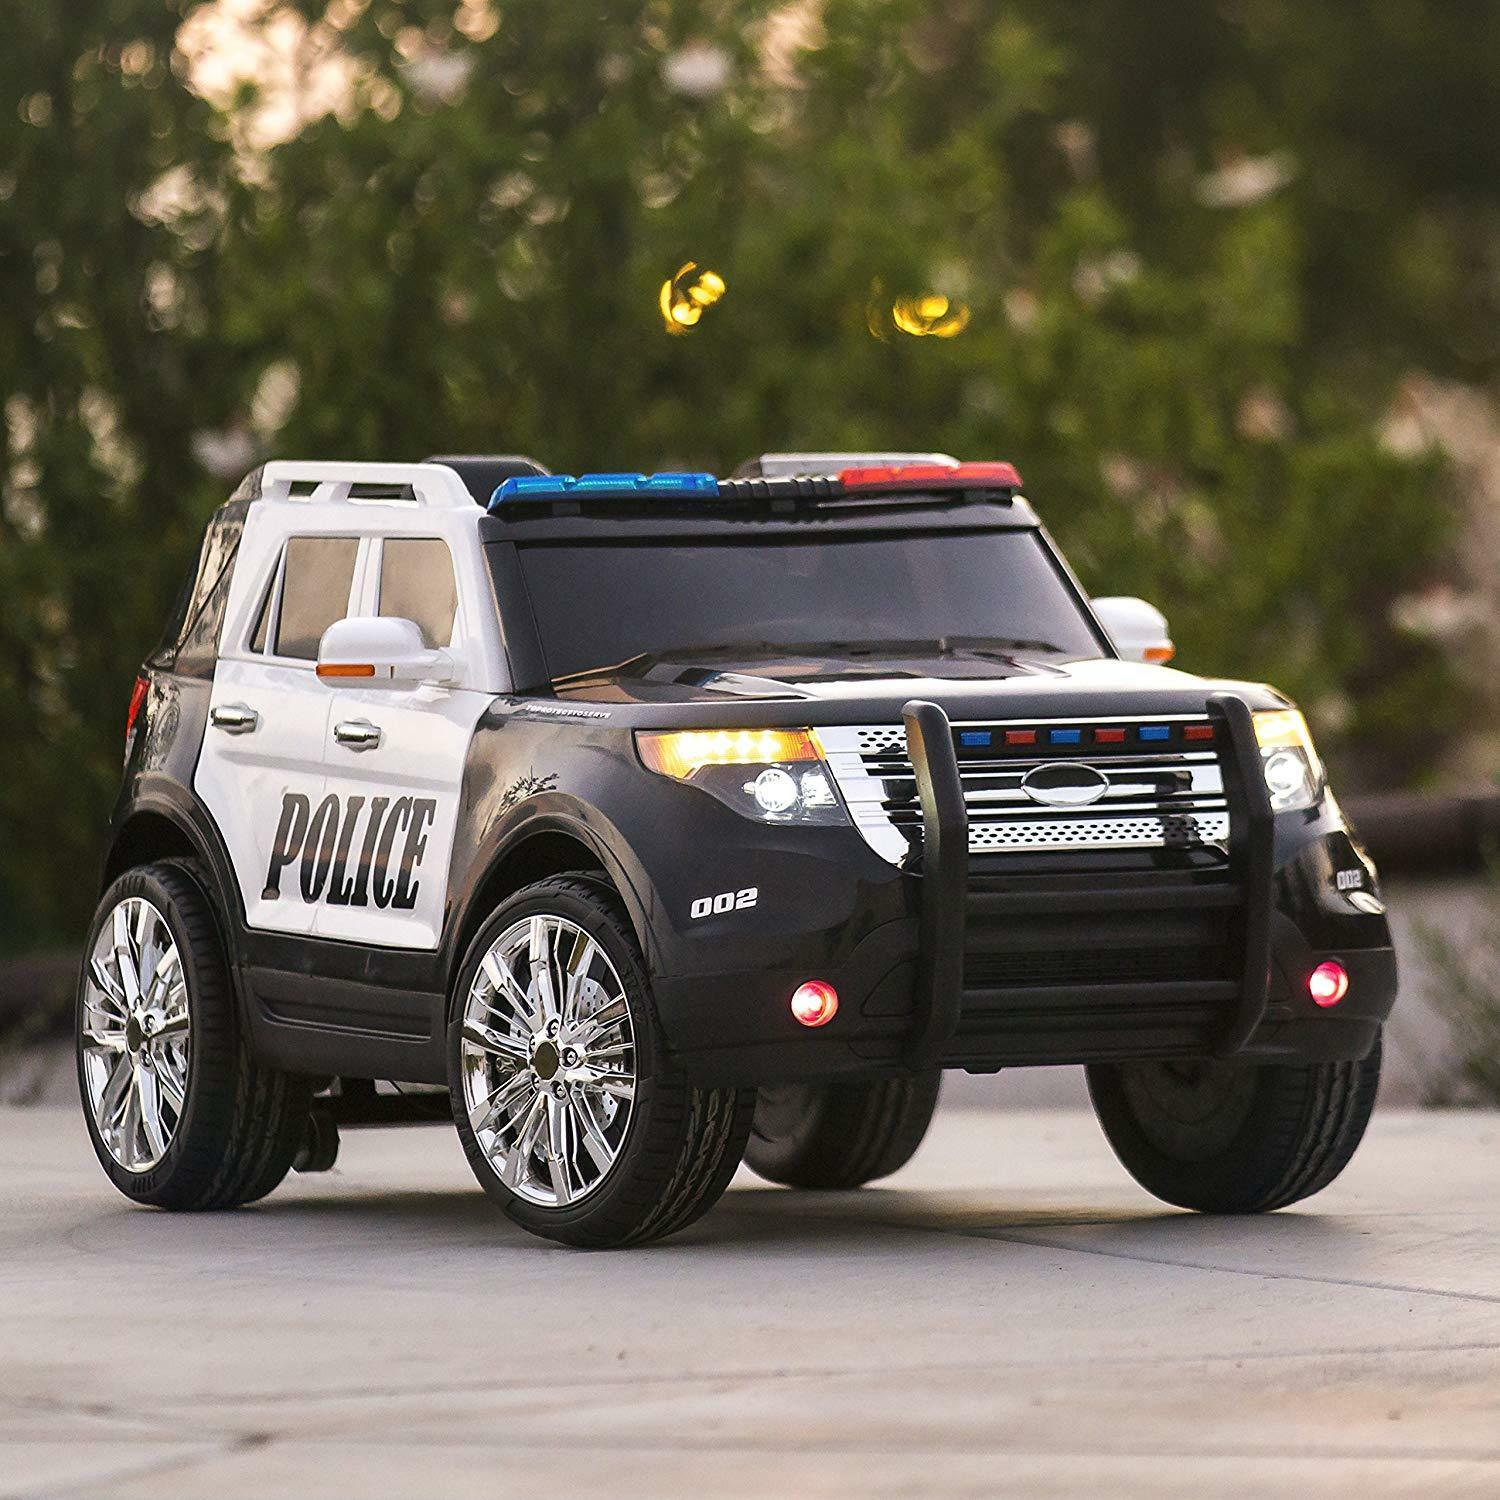 12V  Ford Style Kids Ride On Car Police Car W  Remote Control 2 Speed LED Lights